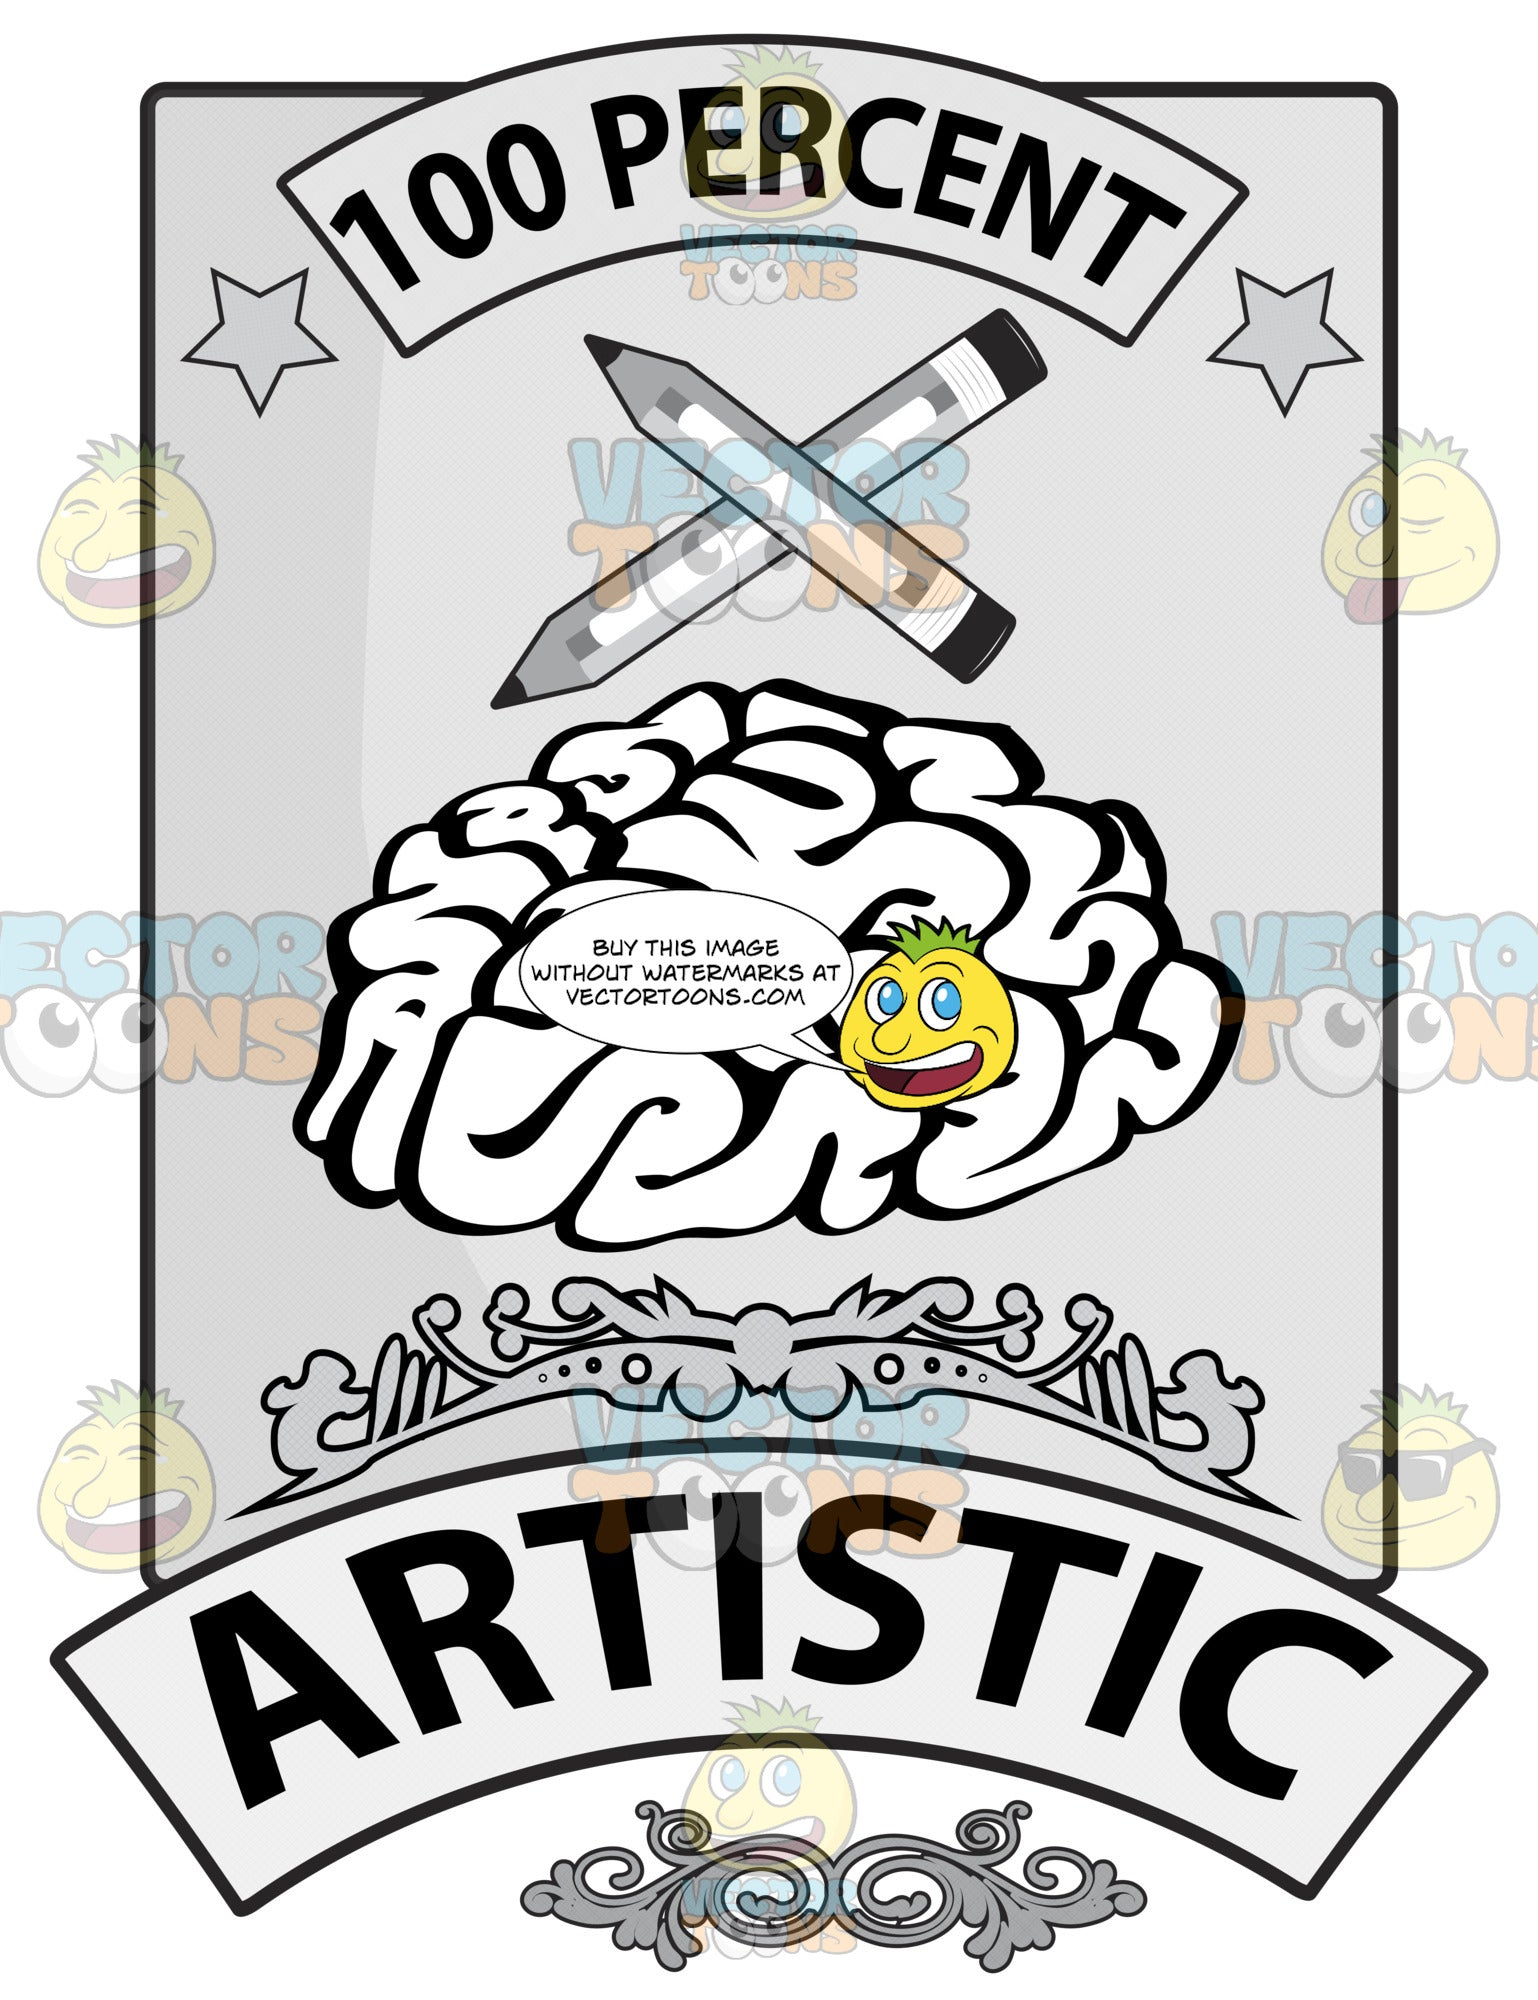 Seal With Human Brain, 100 Percent In Banner, Two Pencils Crossed, Word Artistic In Banner And Ornate Florishes